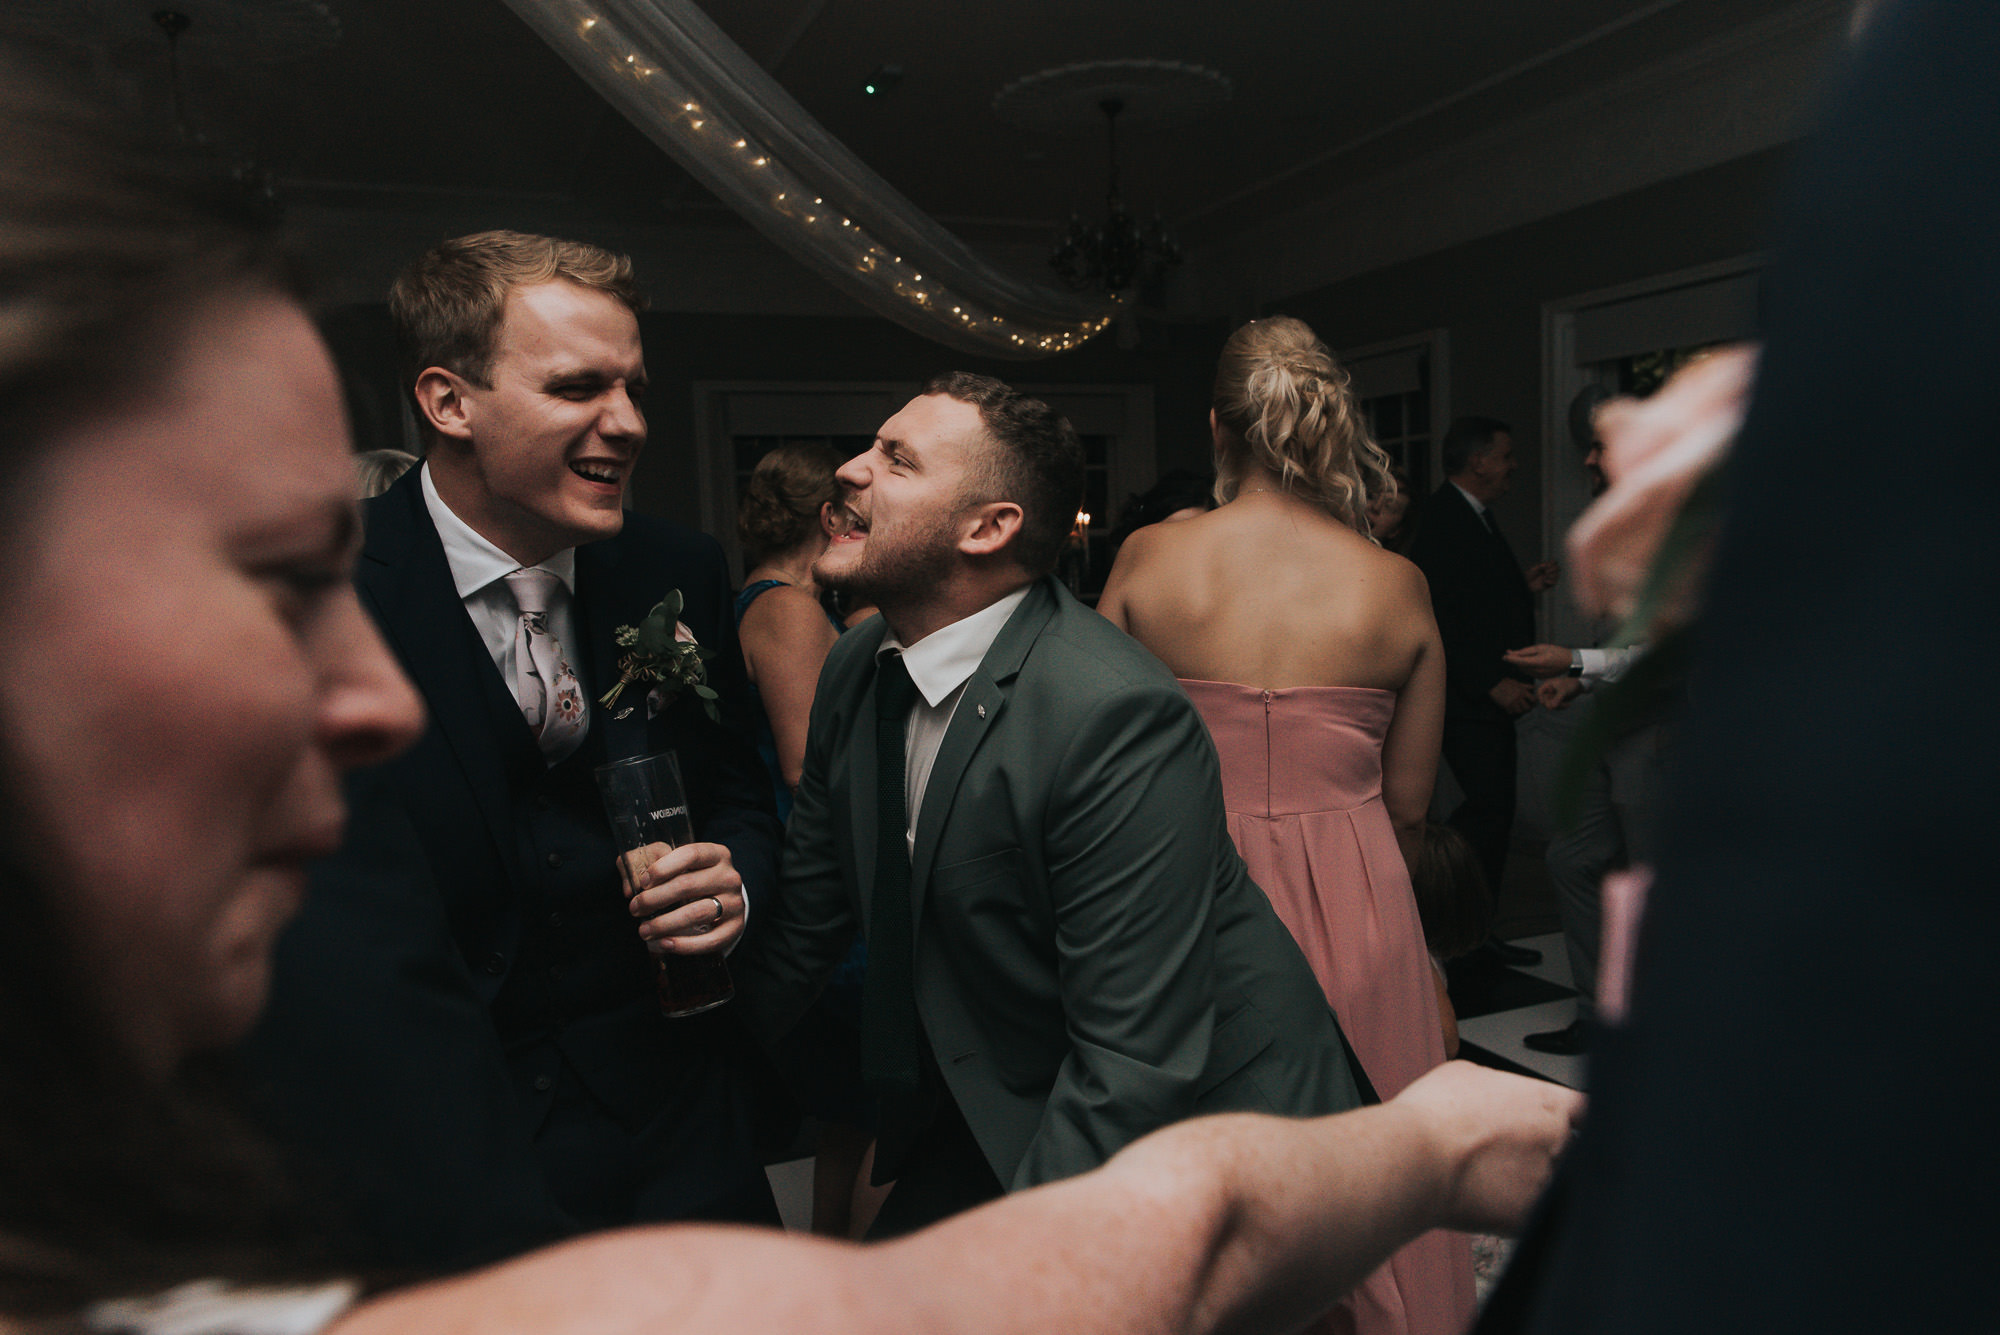 Statham lodge natural and candid wedding photography north west bested full time edding photographer adam joe roberts photography (93 of 96).jpg